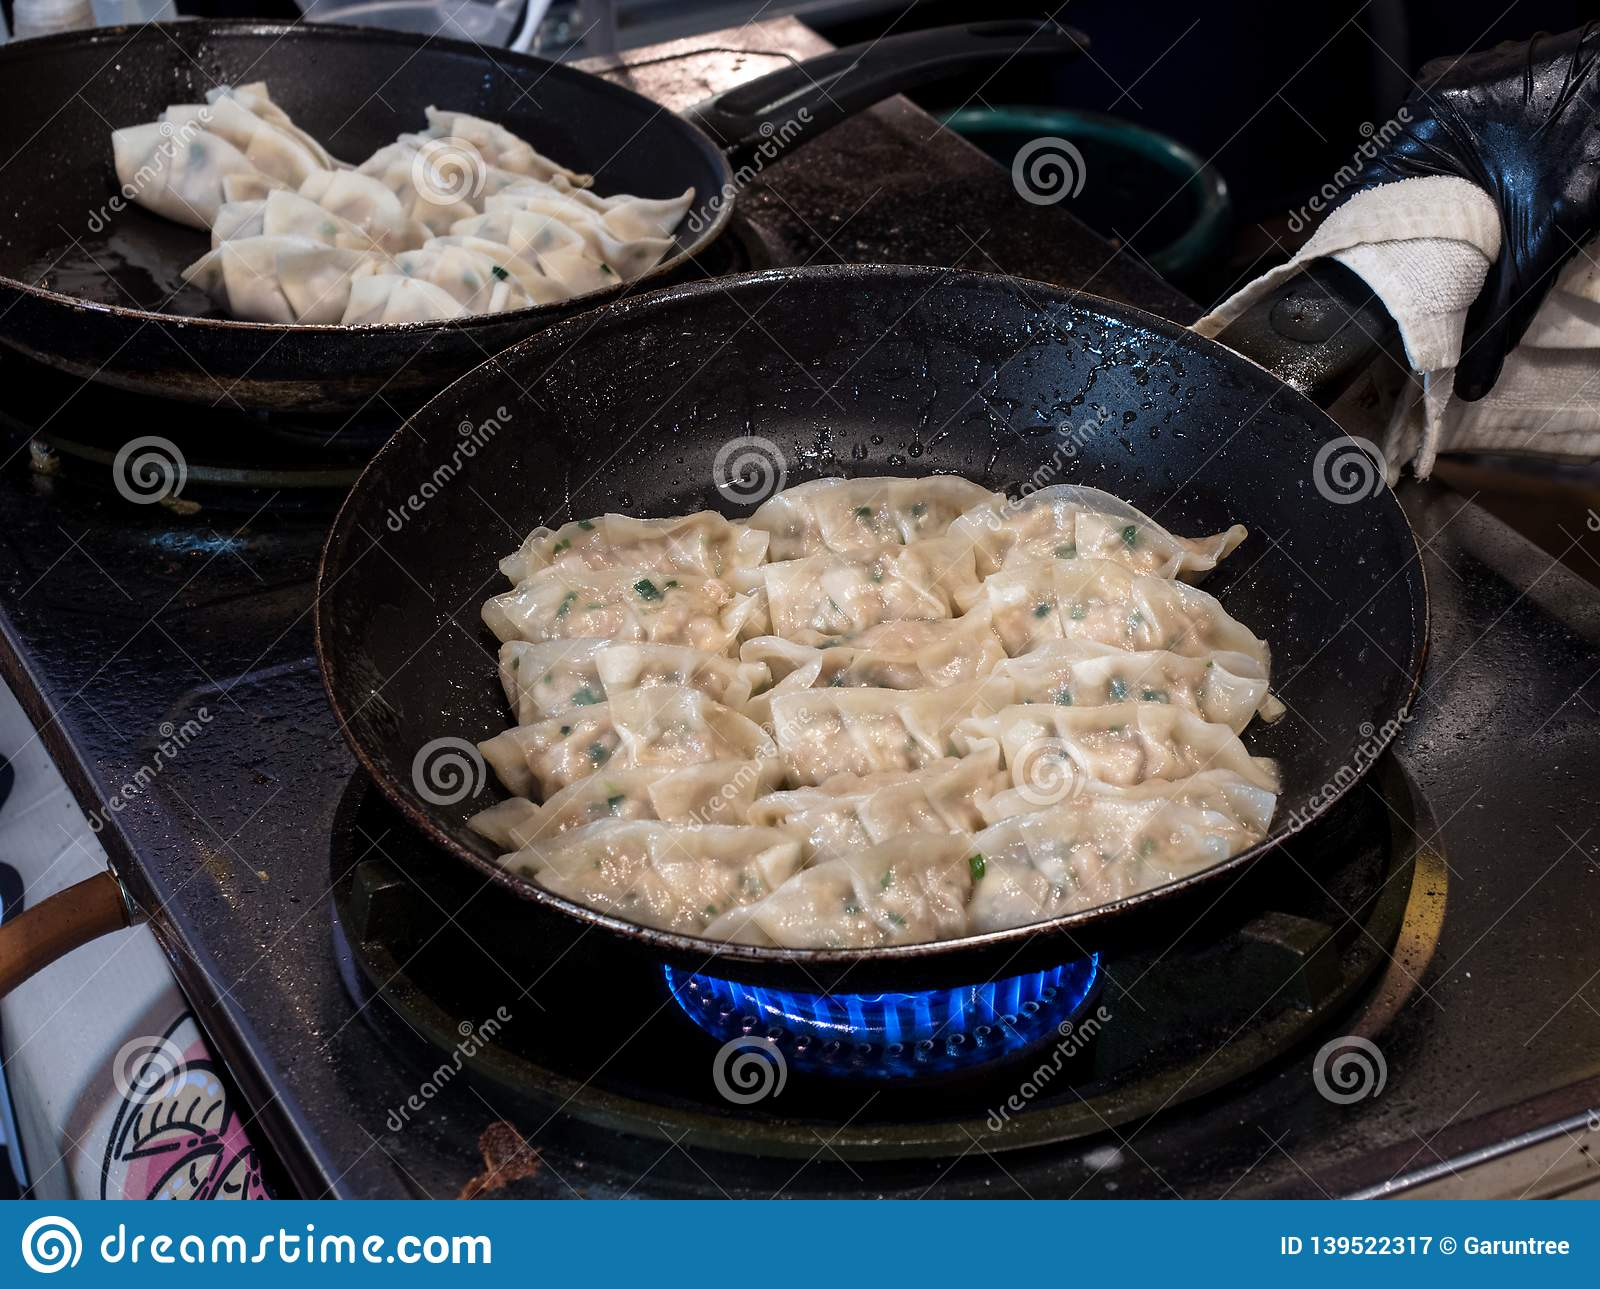 Fried Gyoza in frying pan. Making homemade Japanese dumplings in street food